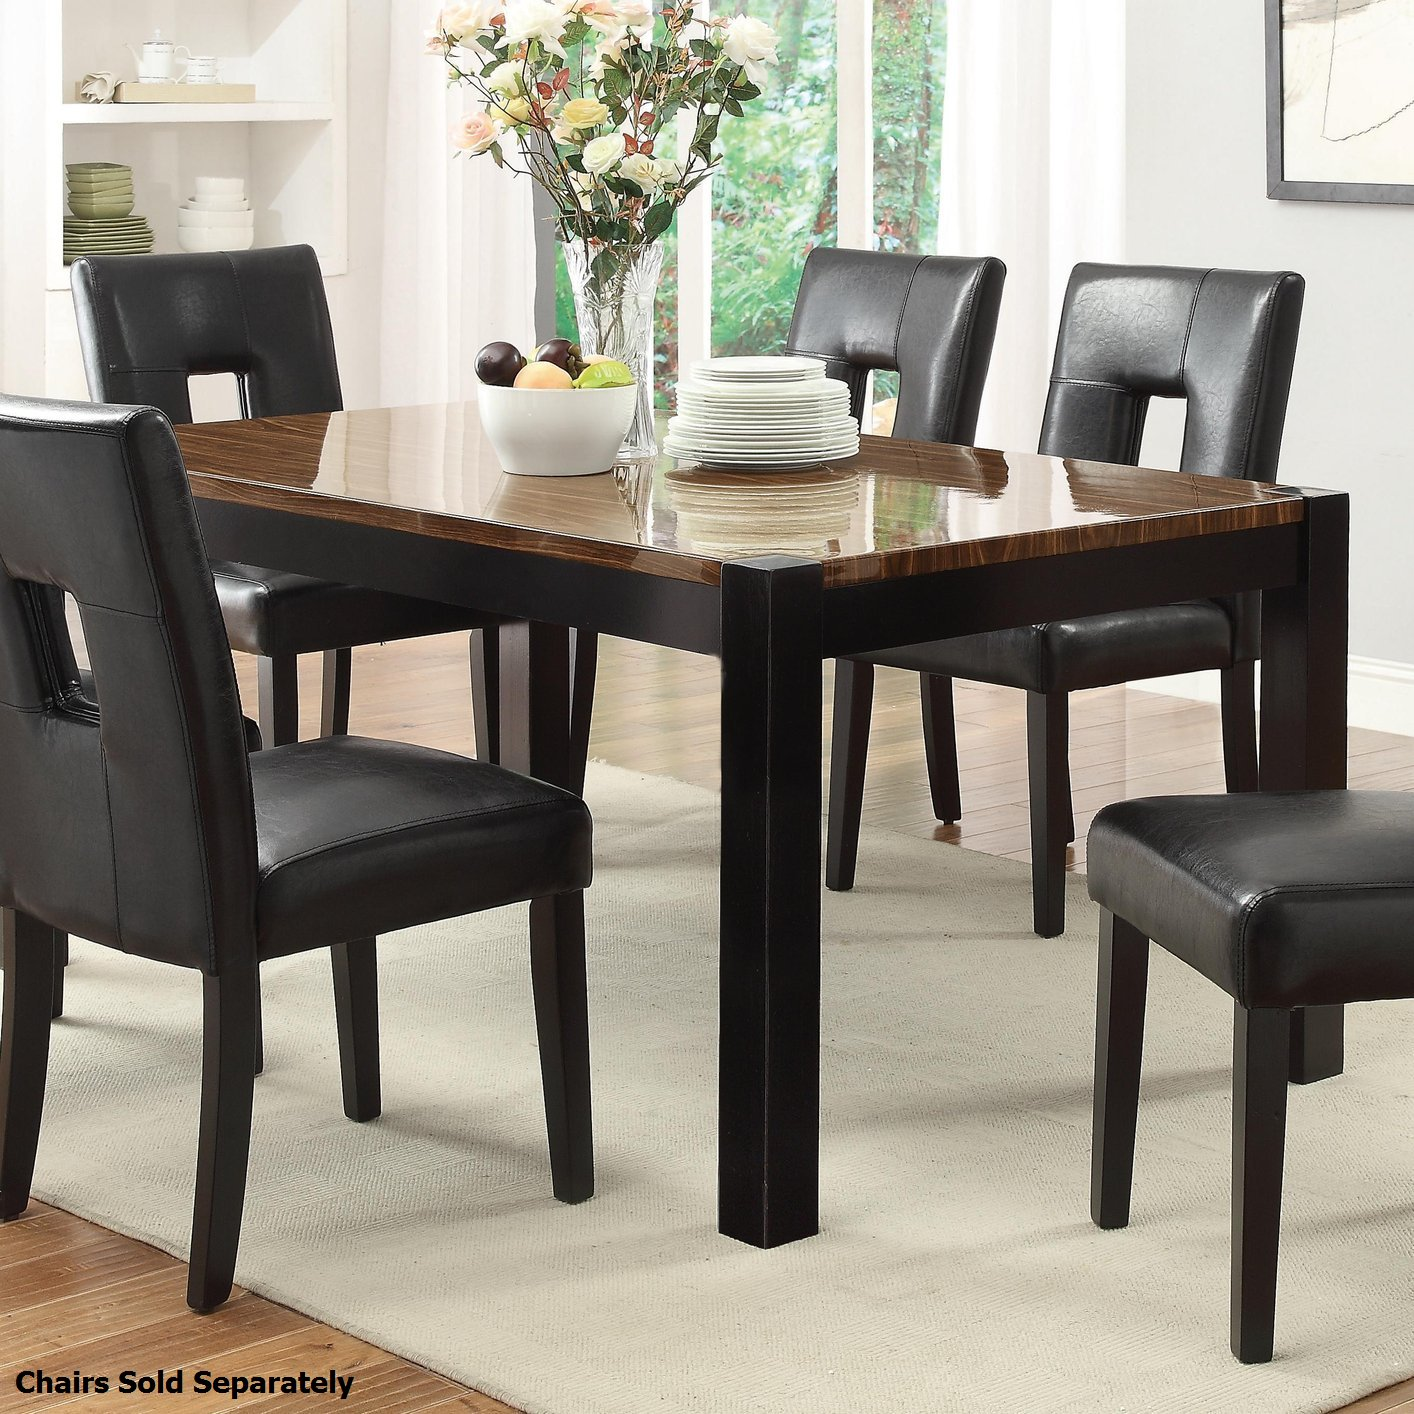 Coaster 103611 black wood dining table steal a sofa for Black dining table